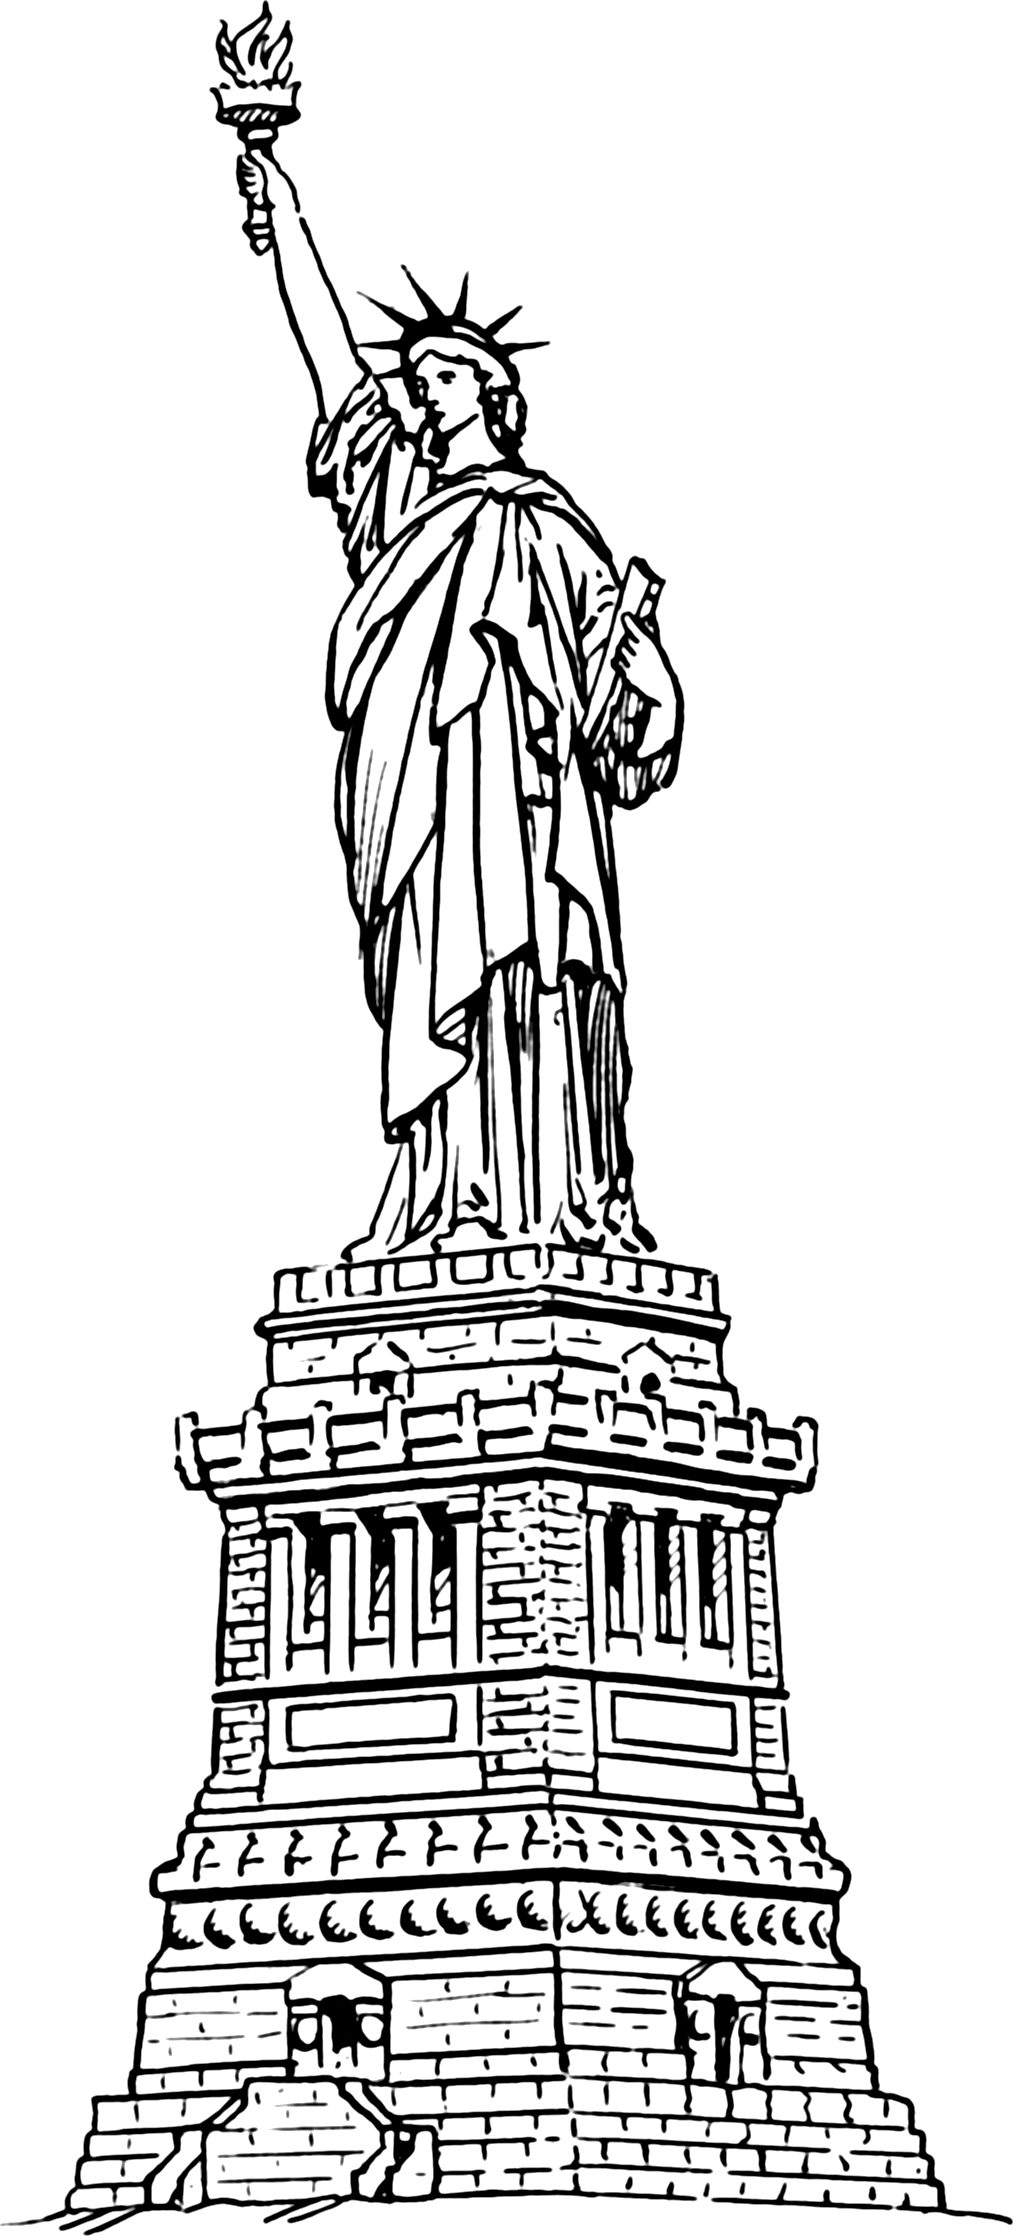 Statue of liberty clipart black and white.